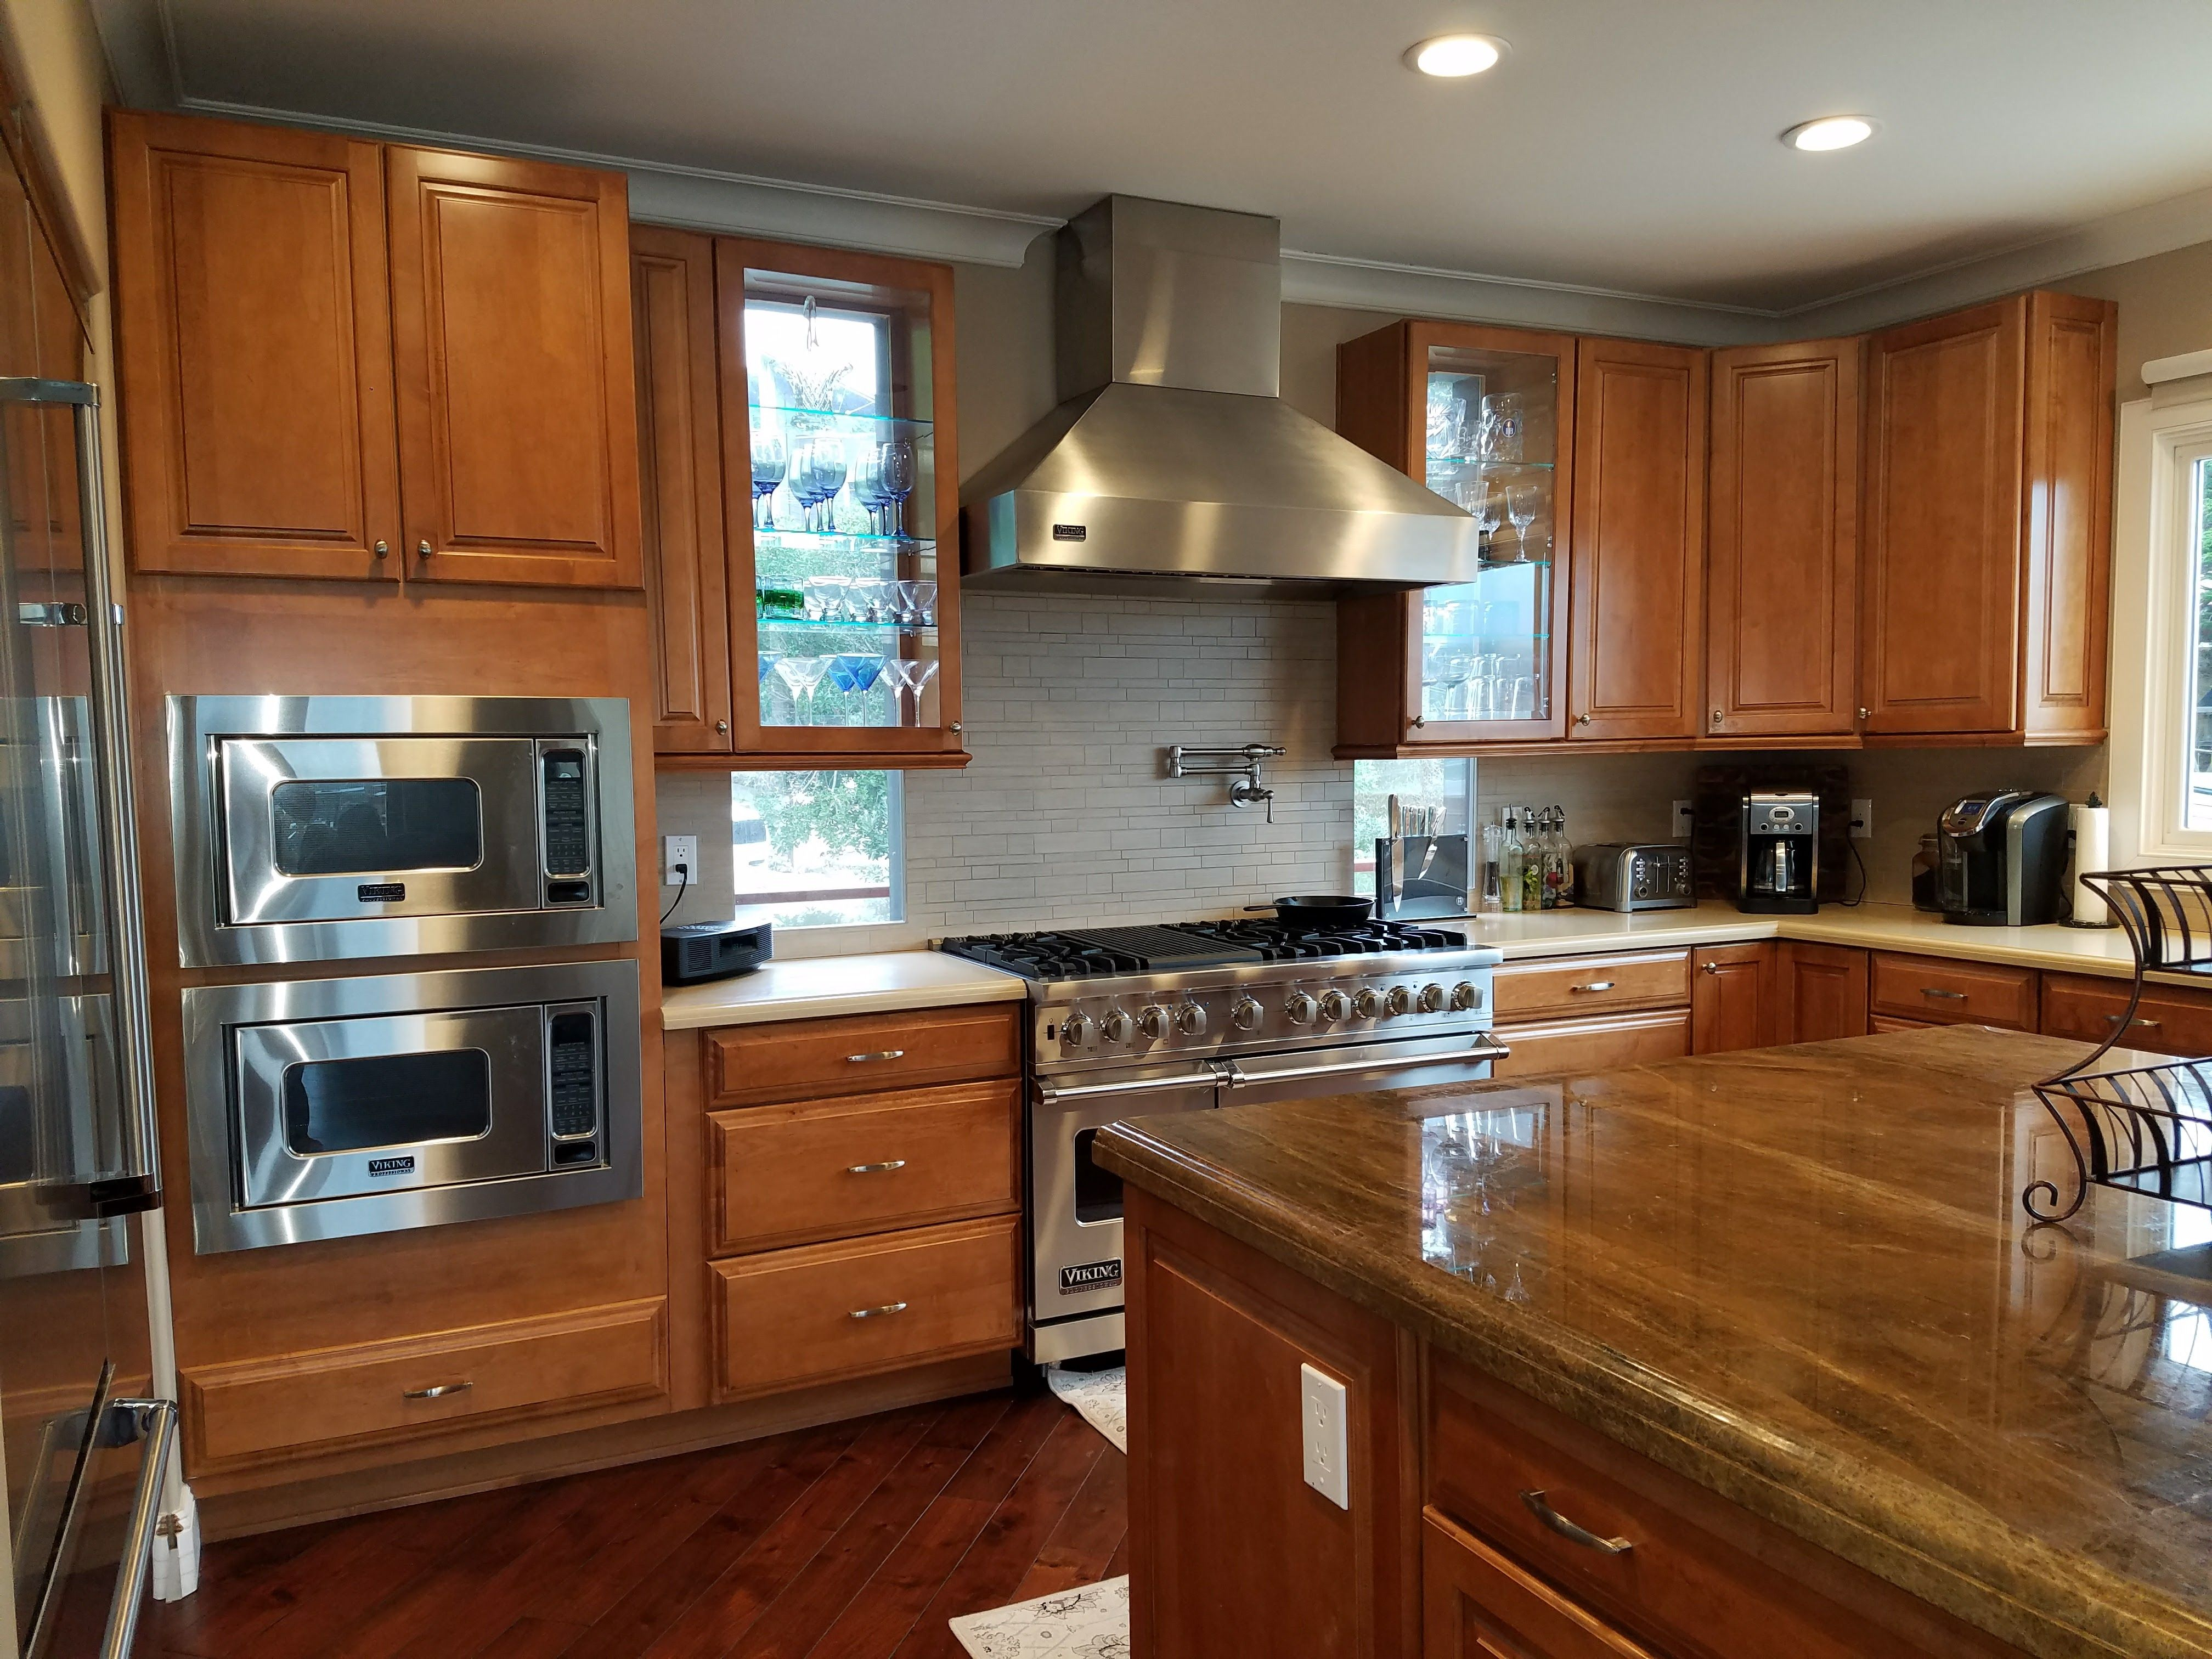 Pin by Gold Ridge Cabinets and Design on Bay Area Clients ...